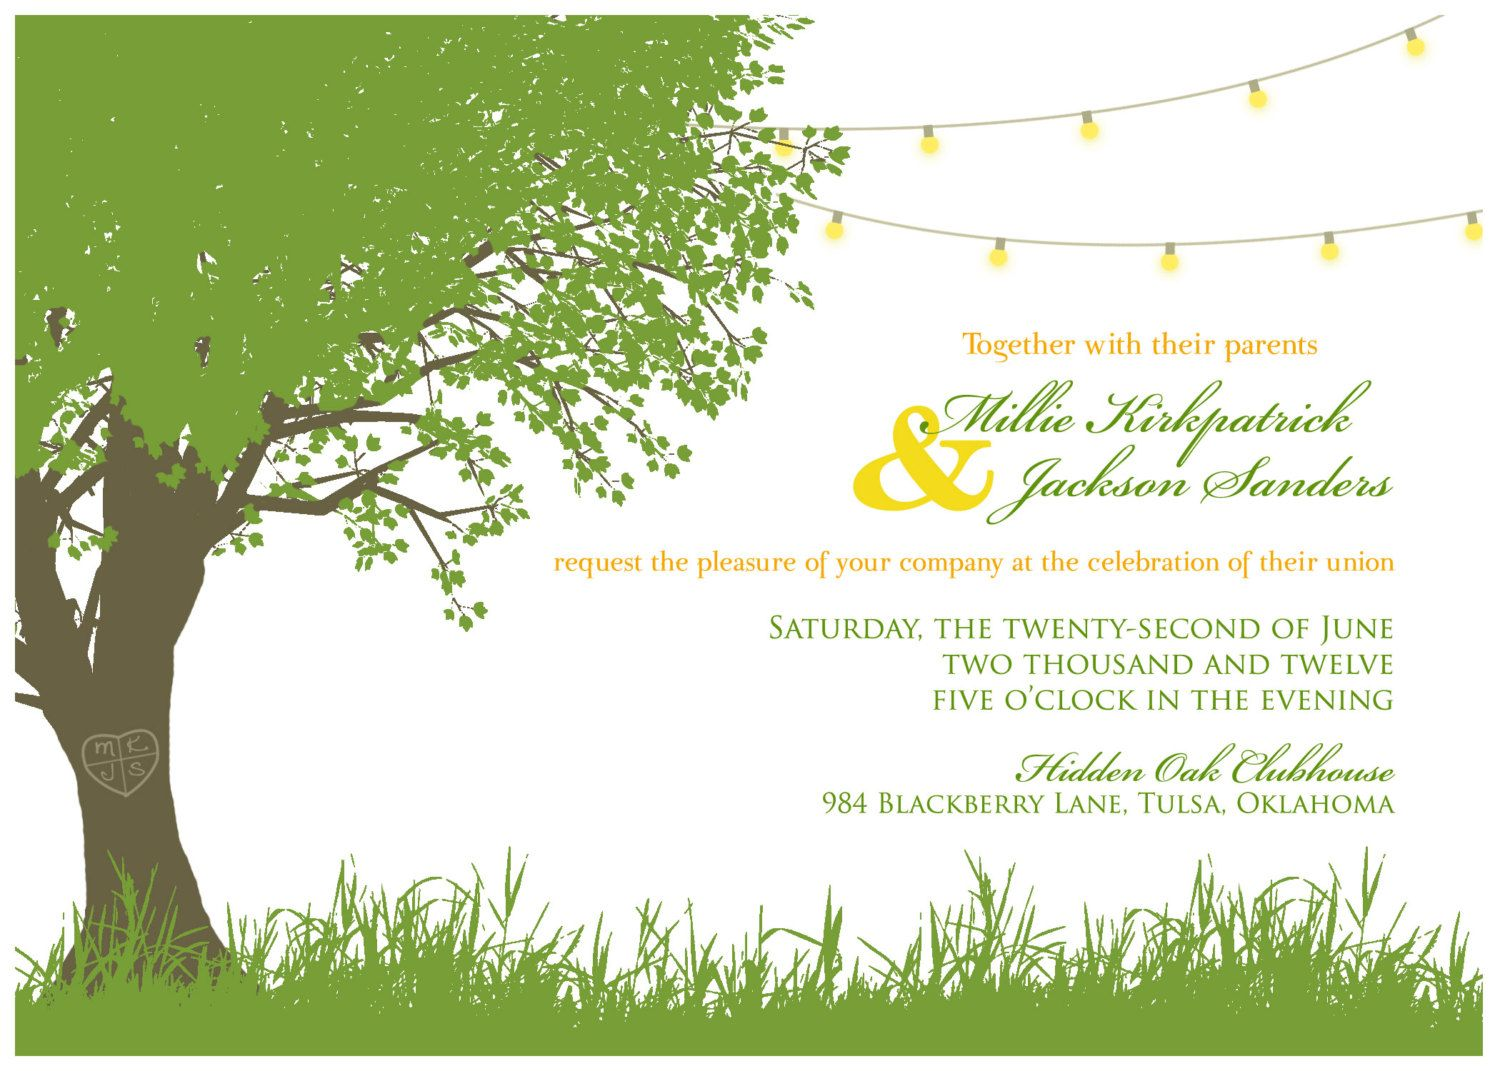 Outdoor Wedding Invitation Wording: Wedding Garden Party Invitations